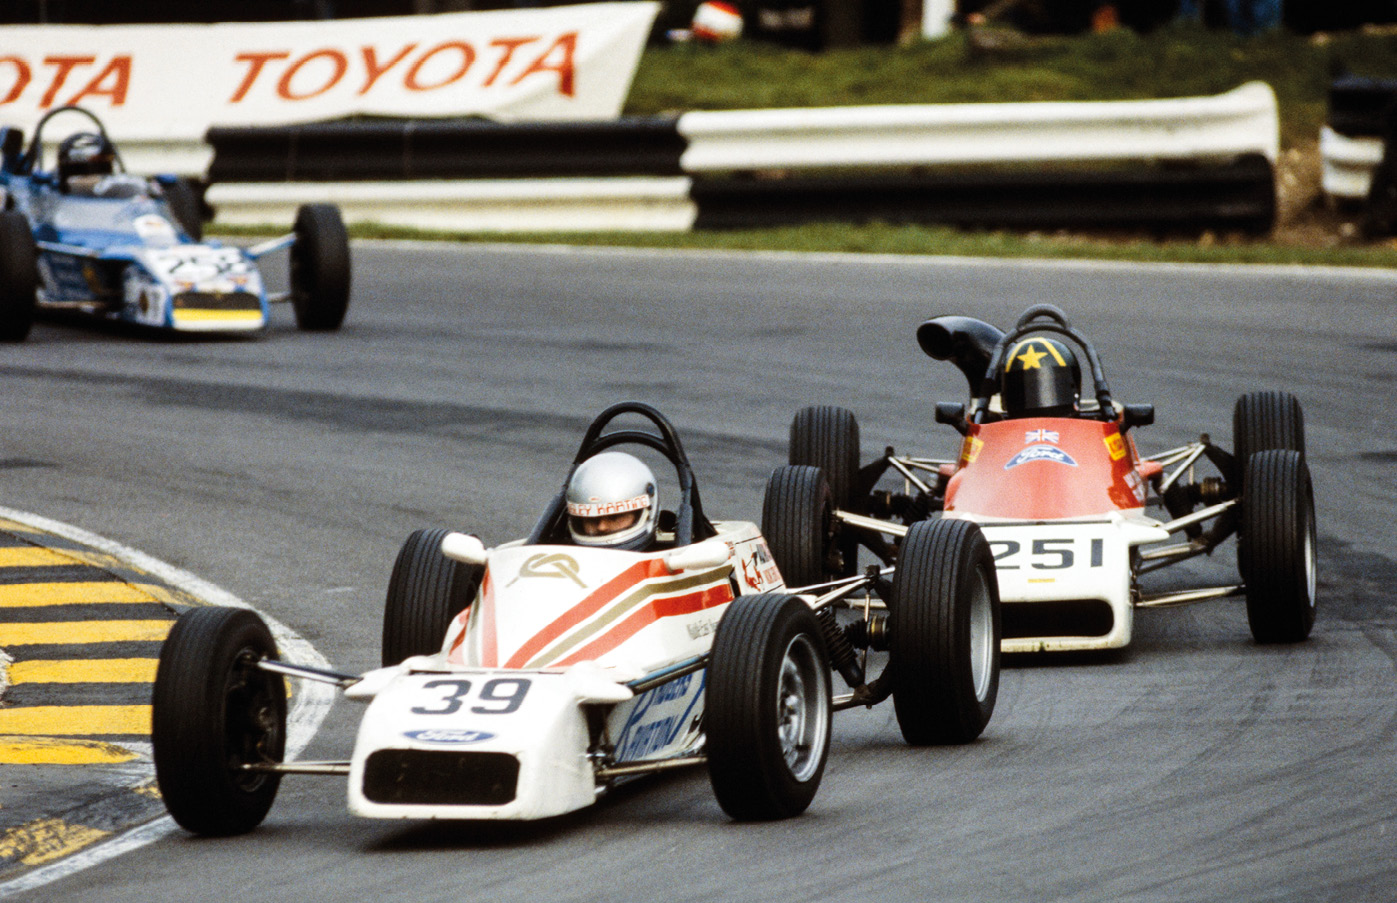 Harvey joined Formula Ford 1600 in 1983 with a Van Diemen. His current car is still number 39